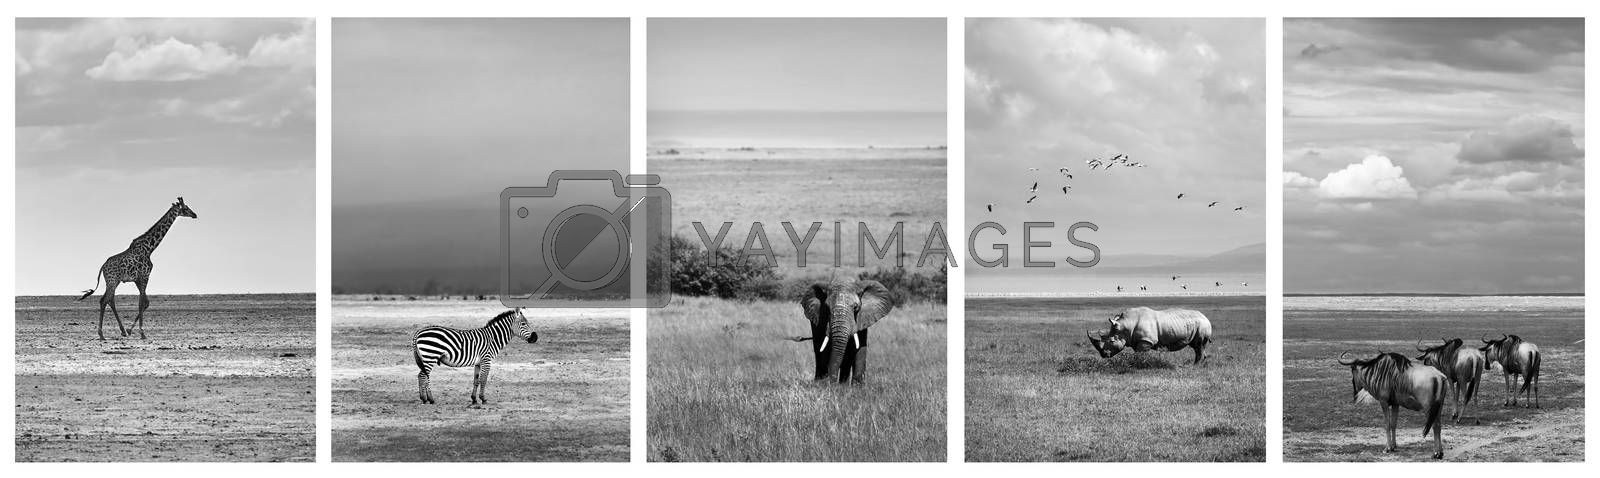 Black and white collage of wildlife photos, safari pictures of a giraffe, zebra, elephant, rhino and wildebeest, adventure travel to Africa, Kenya